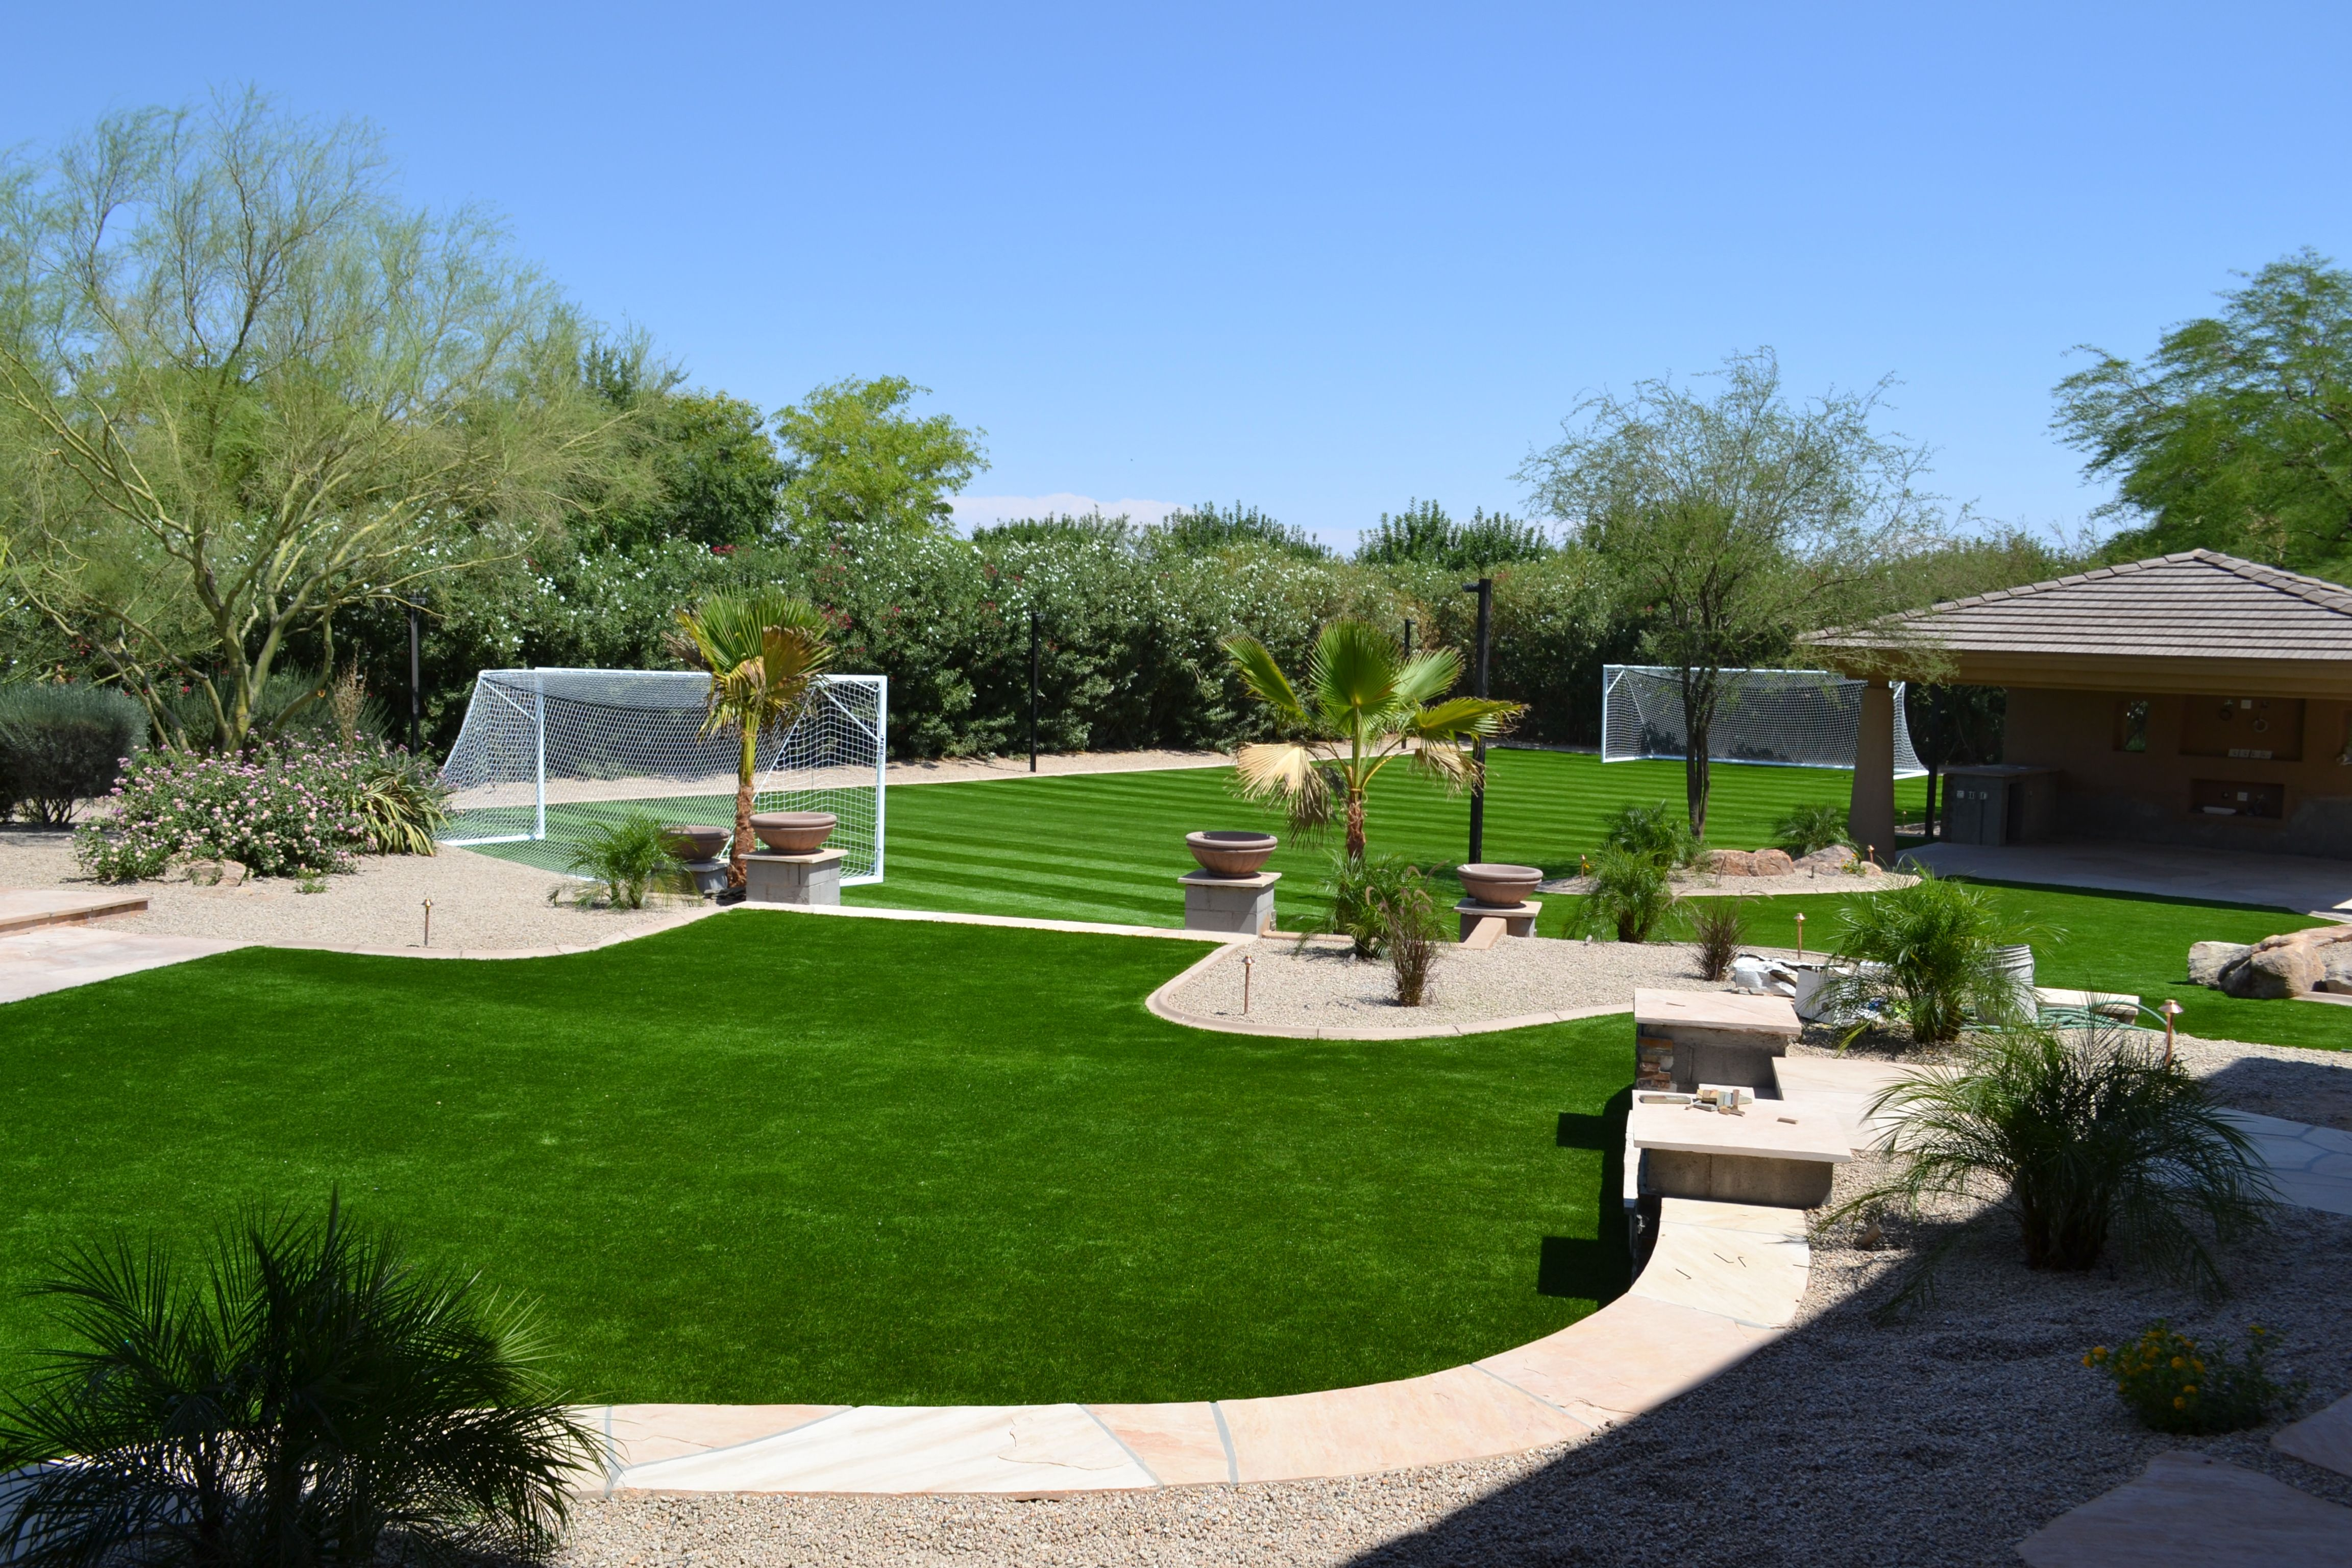 Goal! How About A Soccer Field In Your Backyard? Visit